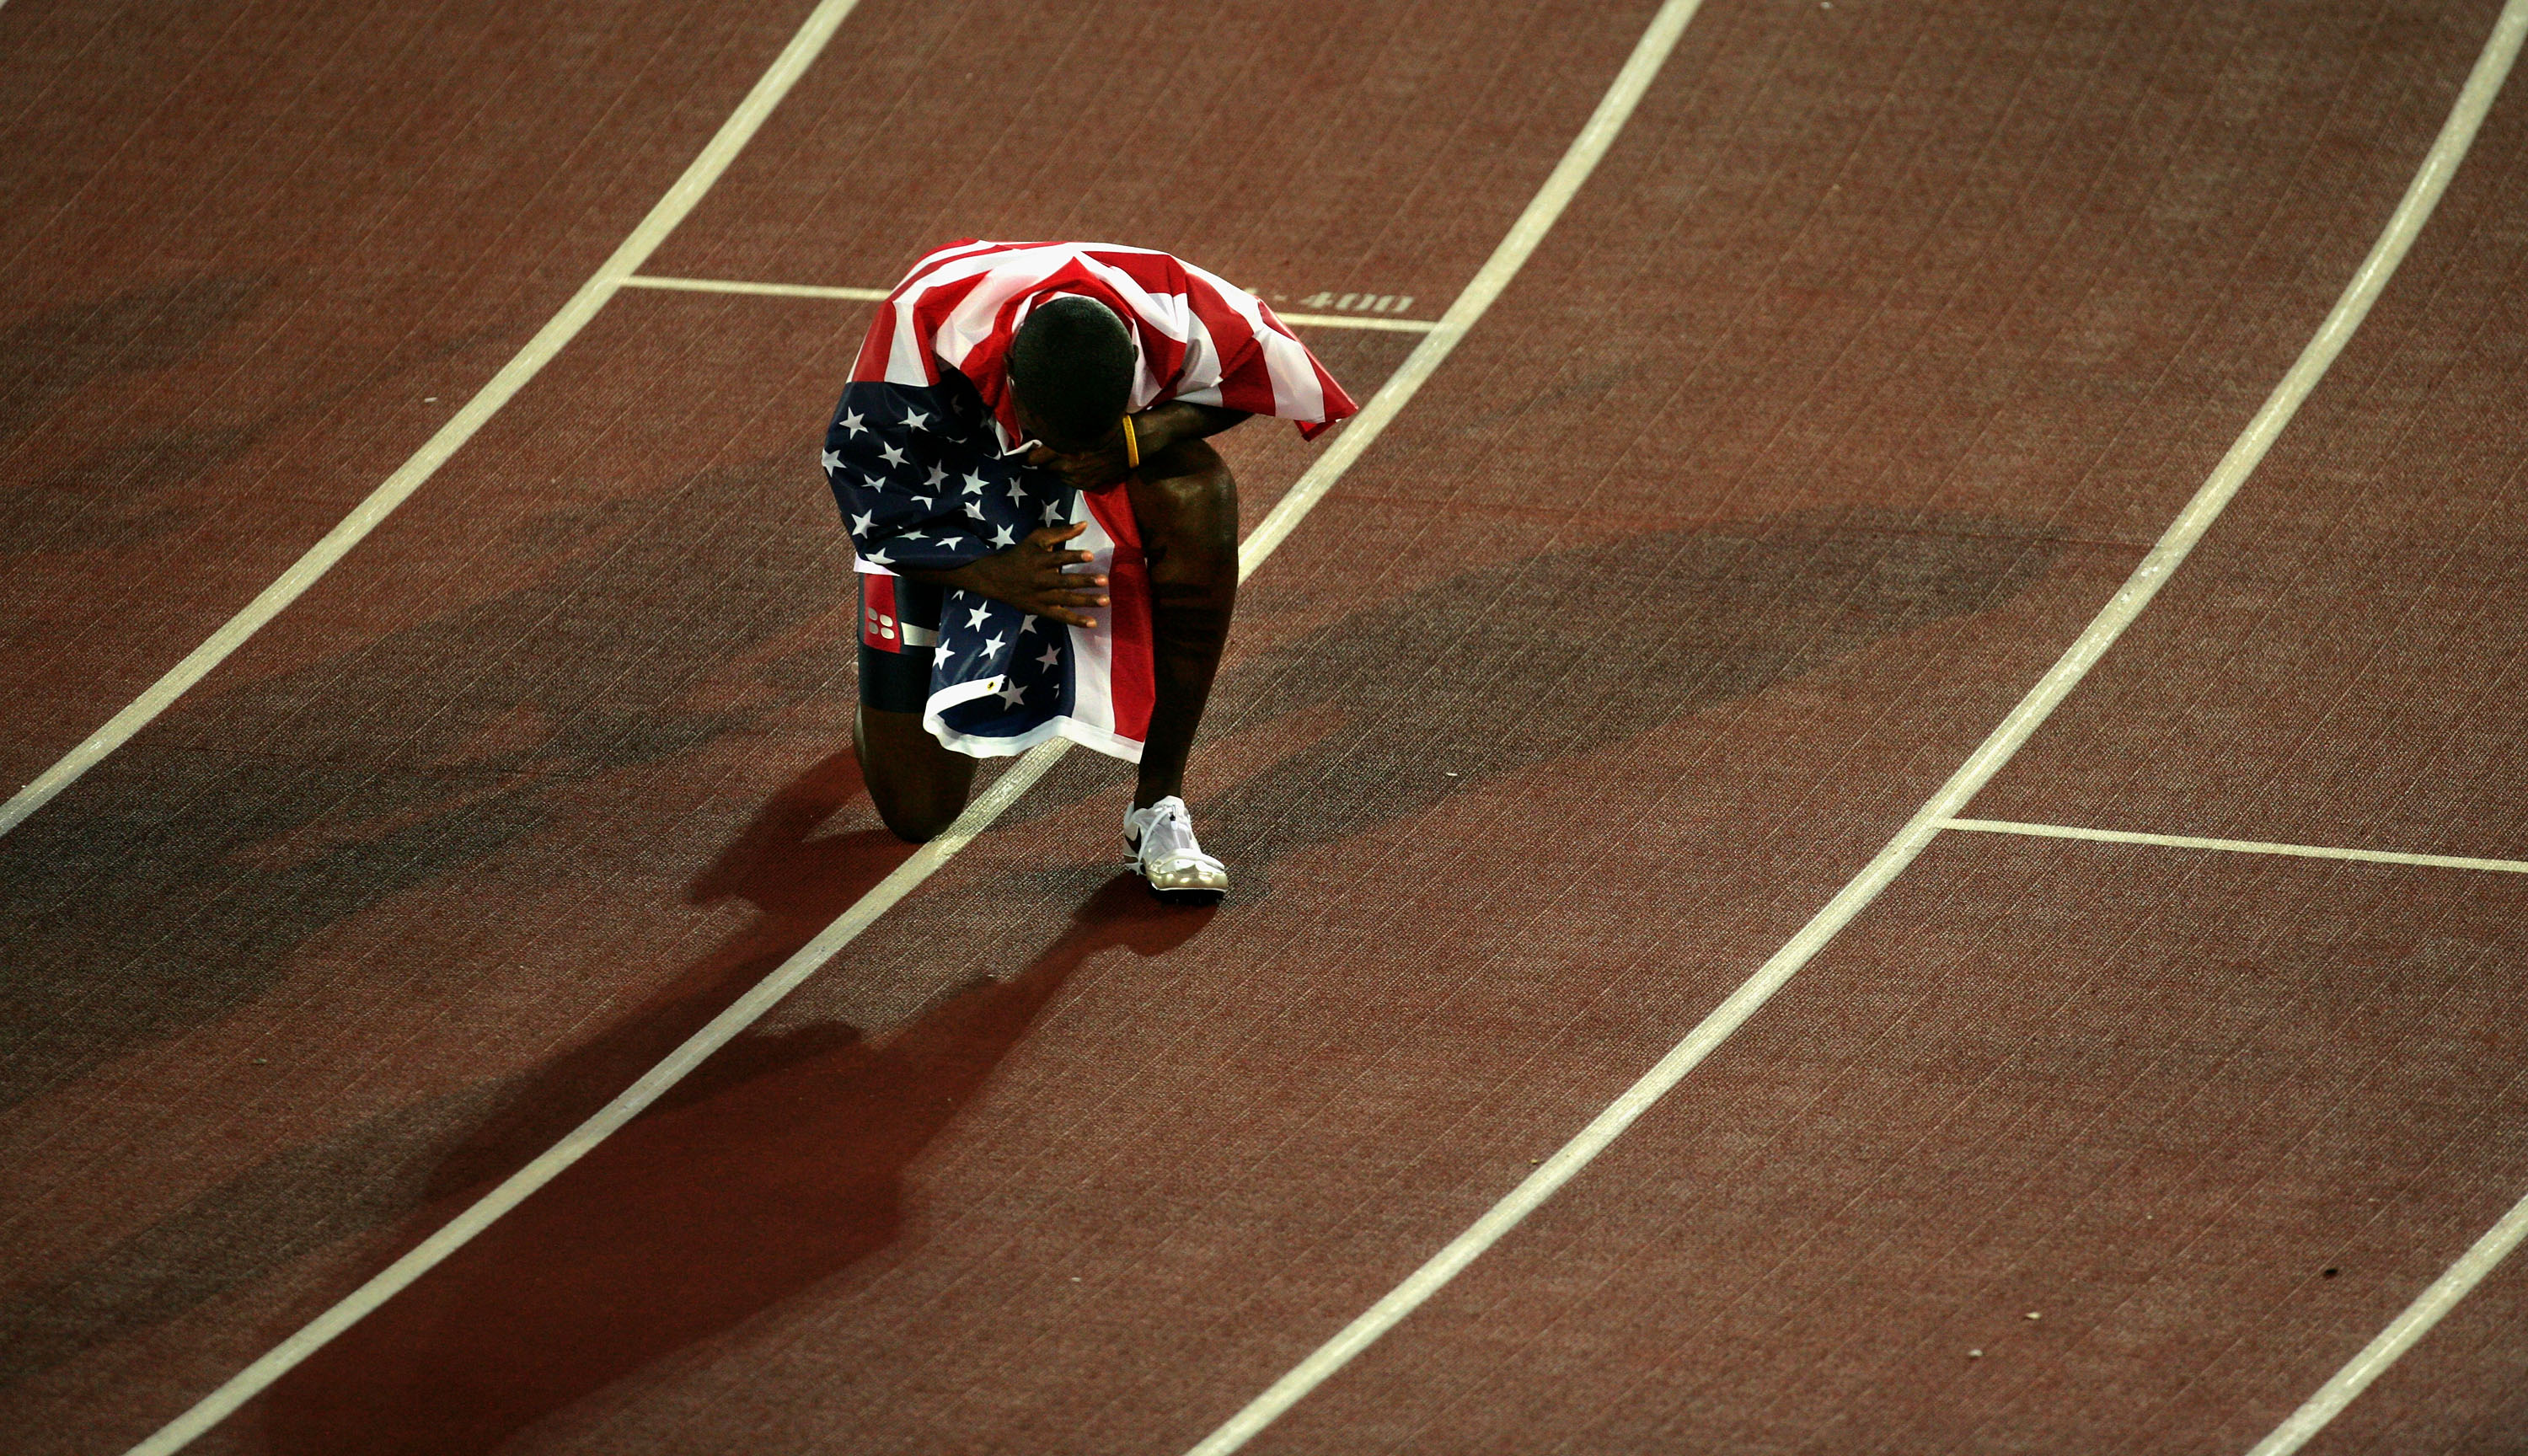 Justin Gatlin of USA celebrates after he won gold in the men's 100 Metres final at the 10th IAAF World Athletics Championships on August 7, 2005 in Helsinki, Finland.